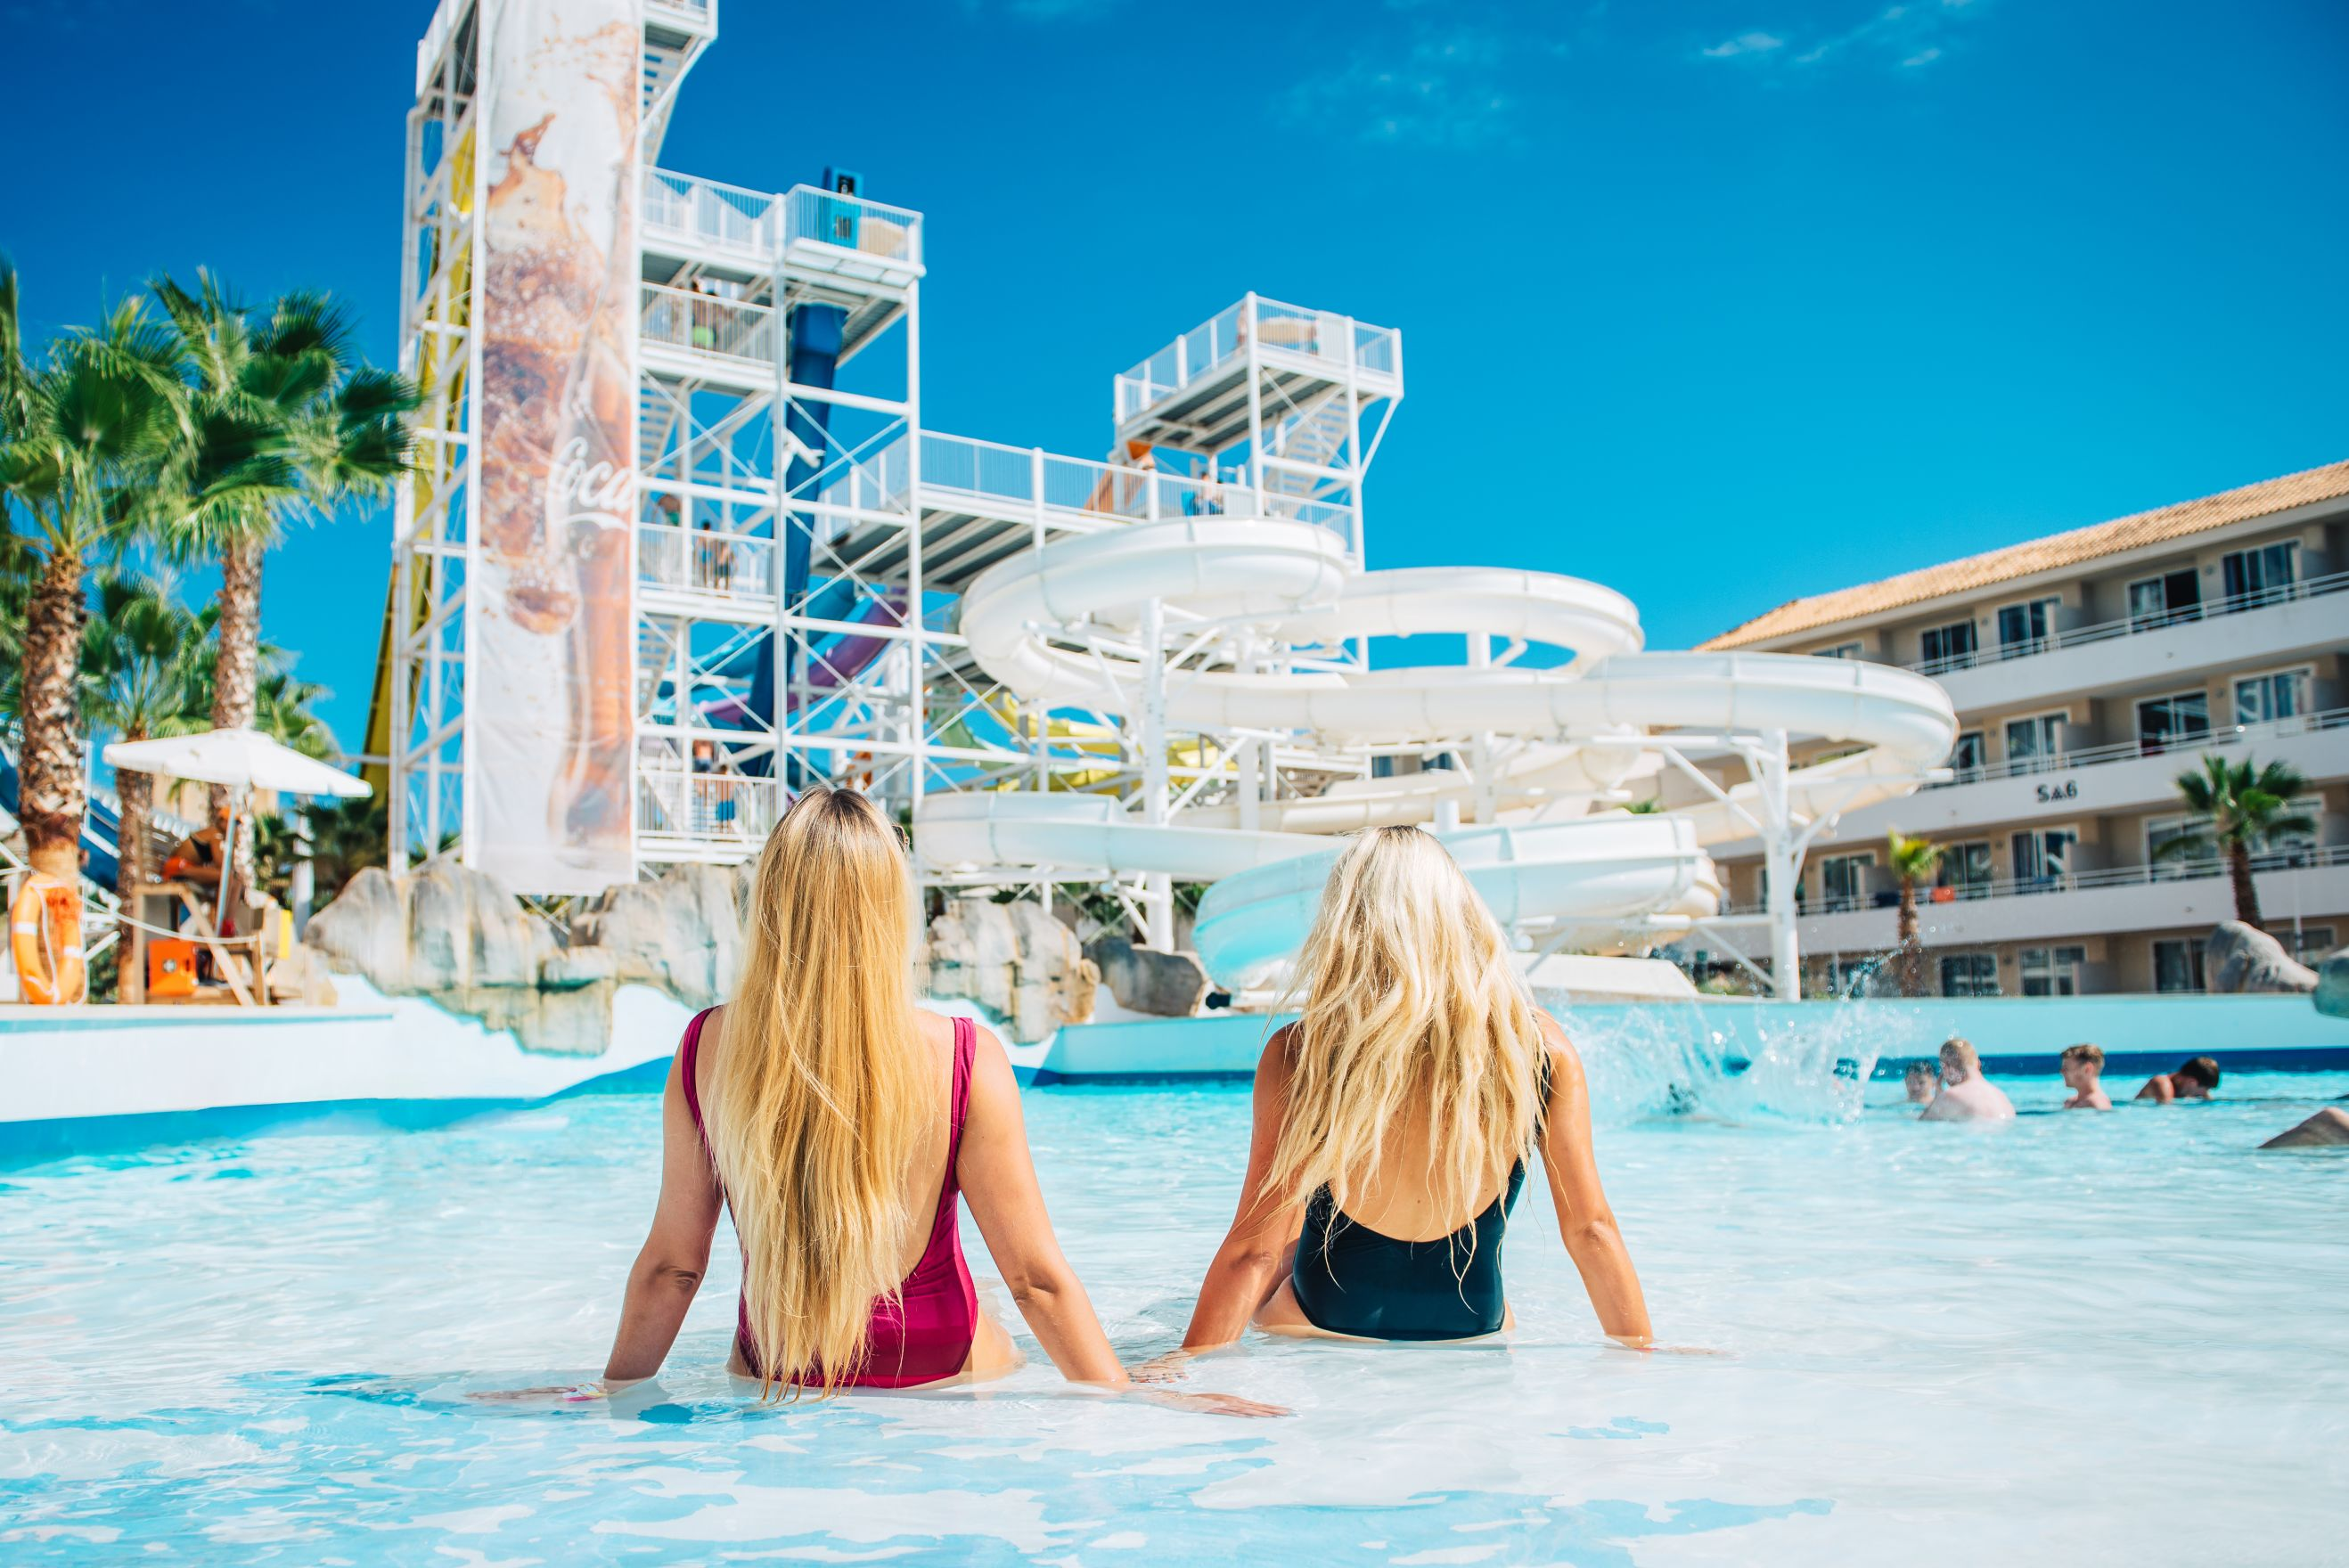 Wave pool - BH Mallorca